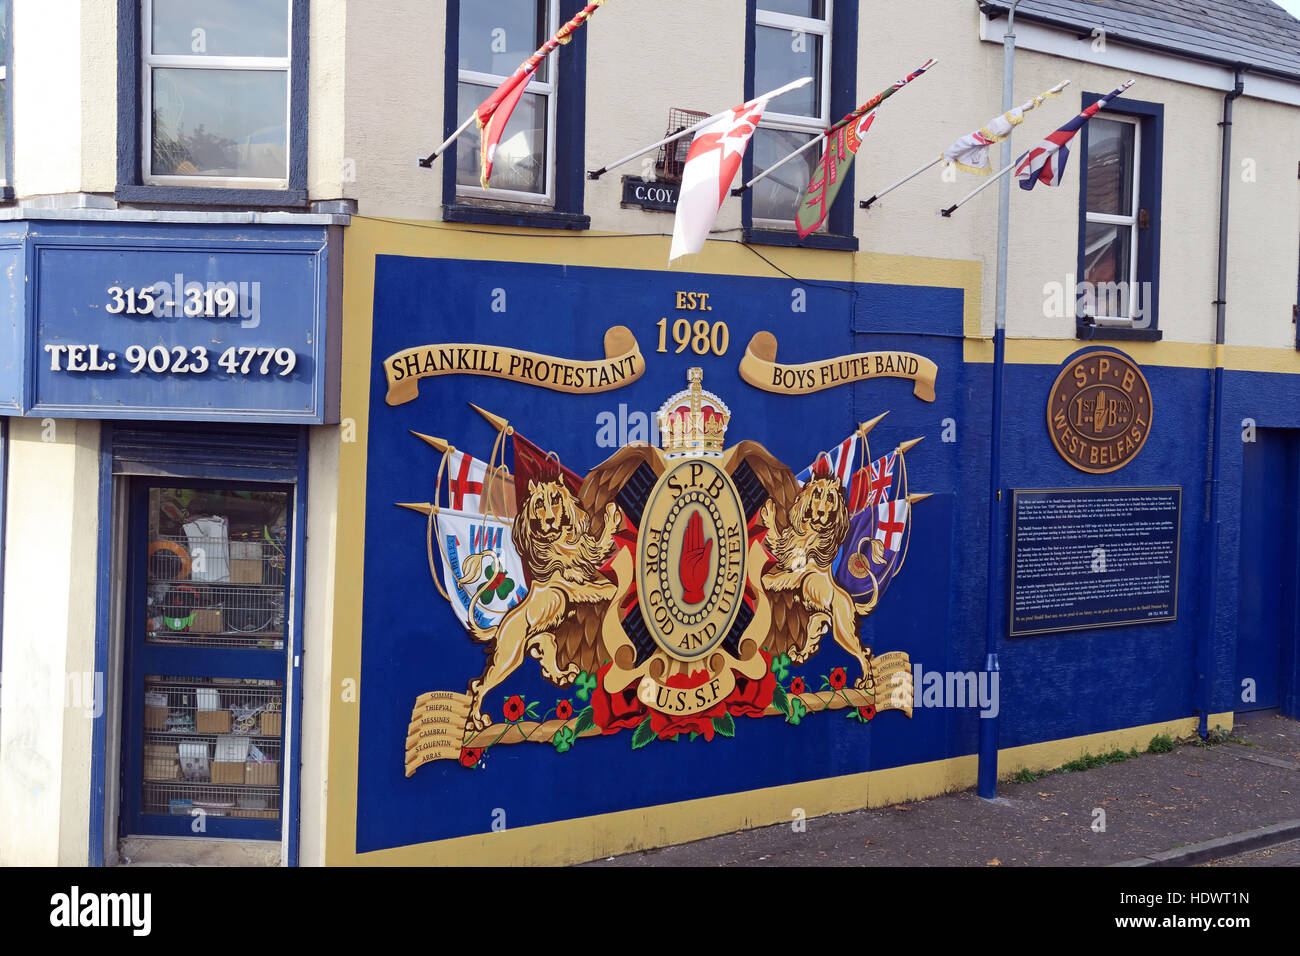 Red hand,Ulster,memorial,UFF,Unionist,mural,off,Shankill,rd,Road,West Belfast,Northern Ireland,UK,Ireland,fighter,fighting,Shankill,Protestant,Boys,Flute,Band,mural,artwork,art,SPB,USSF,GoTonySmith,@HotpixUK,Tony,Smith,UK,GB,Great,Britain,United,Kingdom,Irish,British,Ireland,problem,with,problem with,issue with,NI,Northern,Northern Ireland,Belfast,City,Centre,Art,Artists,the,troubles,The Troubles,Good Friday Agreement,Peace,honour,painting,wall,walls,tribute,Unionist,unionism,Protestant,community,Fight,Justice,West,Beal,feirste,martyrs,social,tour,tourism,tourists,urban,six,counties,6,backdrop,county,Antrim,UVF,DUP,British,GB,Empire,Buy Pictures of,Buy Images Of,Images of,Stock Images,Tony Smith,United Kingdom,Great Britain,British Isles,Belfast protestant community,Peoples army,Shankill Protestant Boys